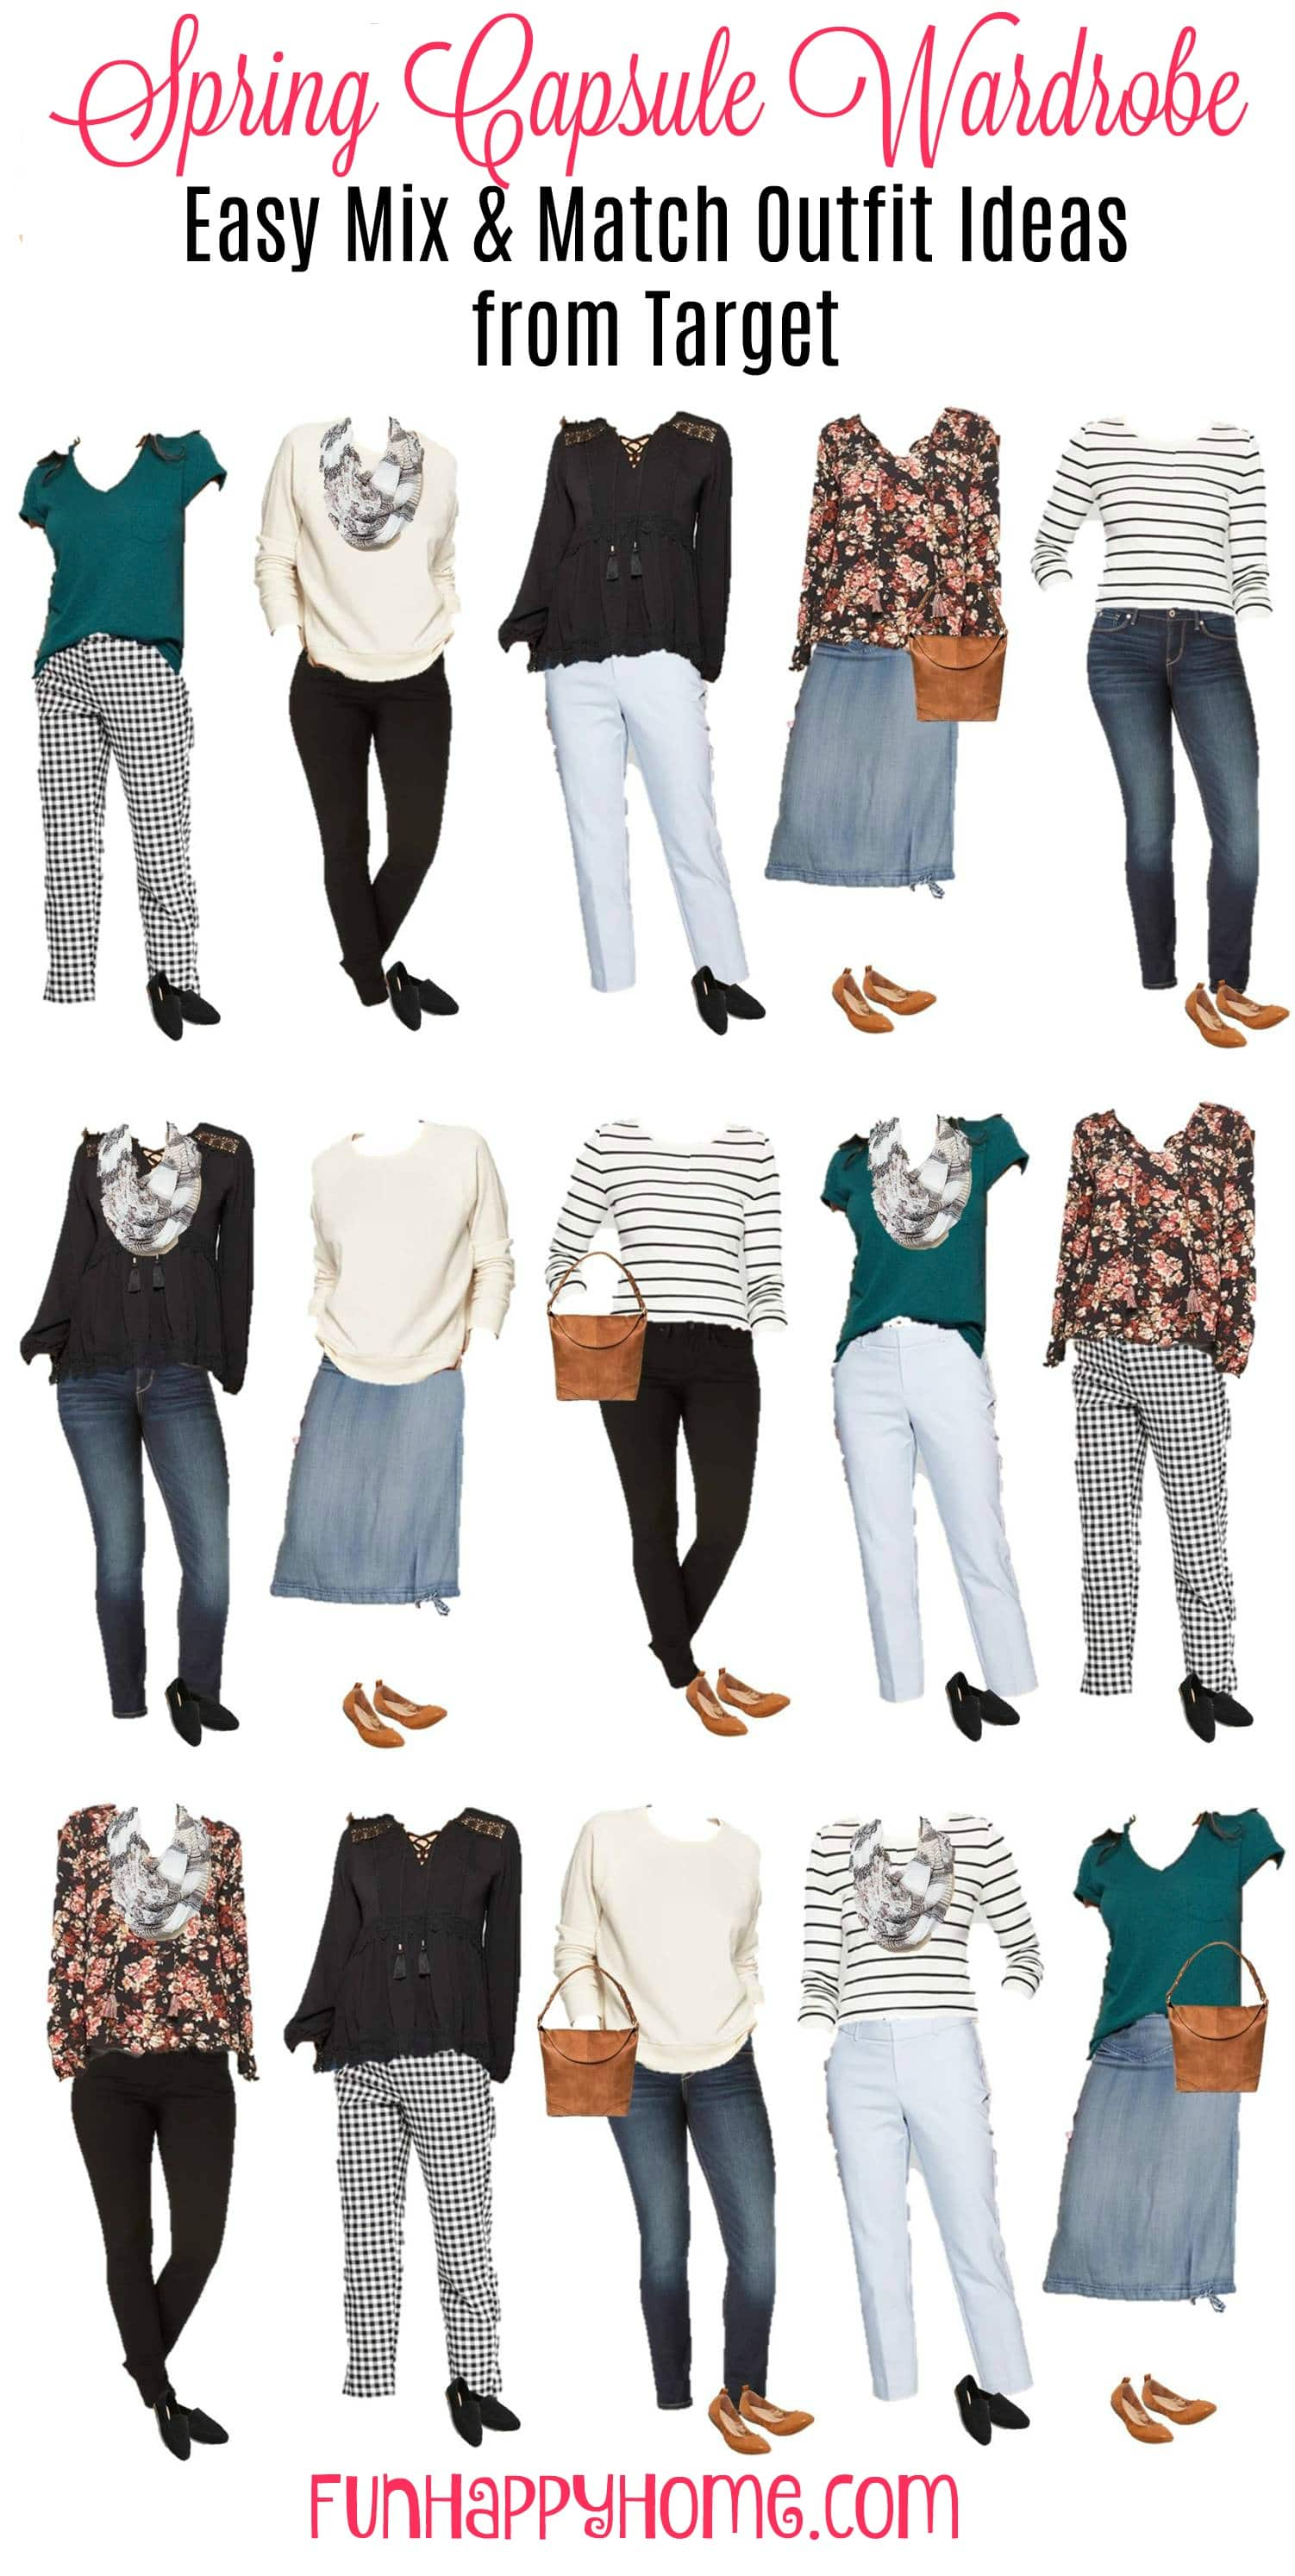 Spring Capsule Wardrobe Easy Mix and Match Outfit Ideas from Target